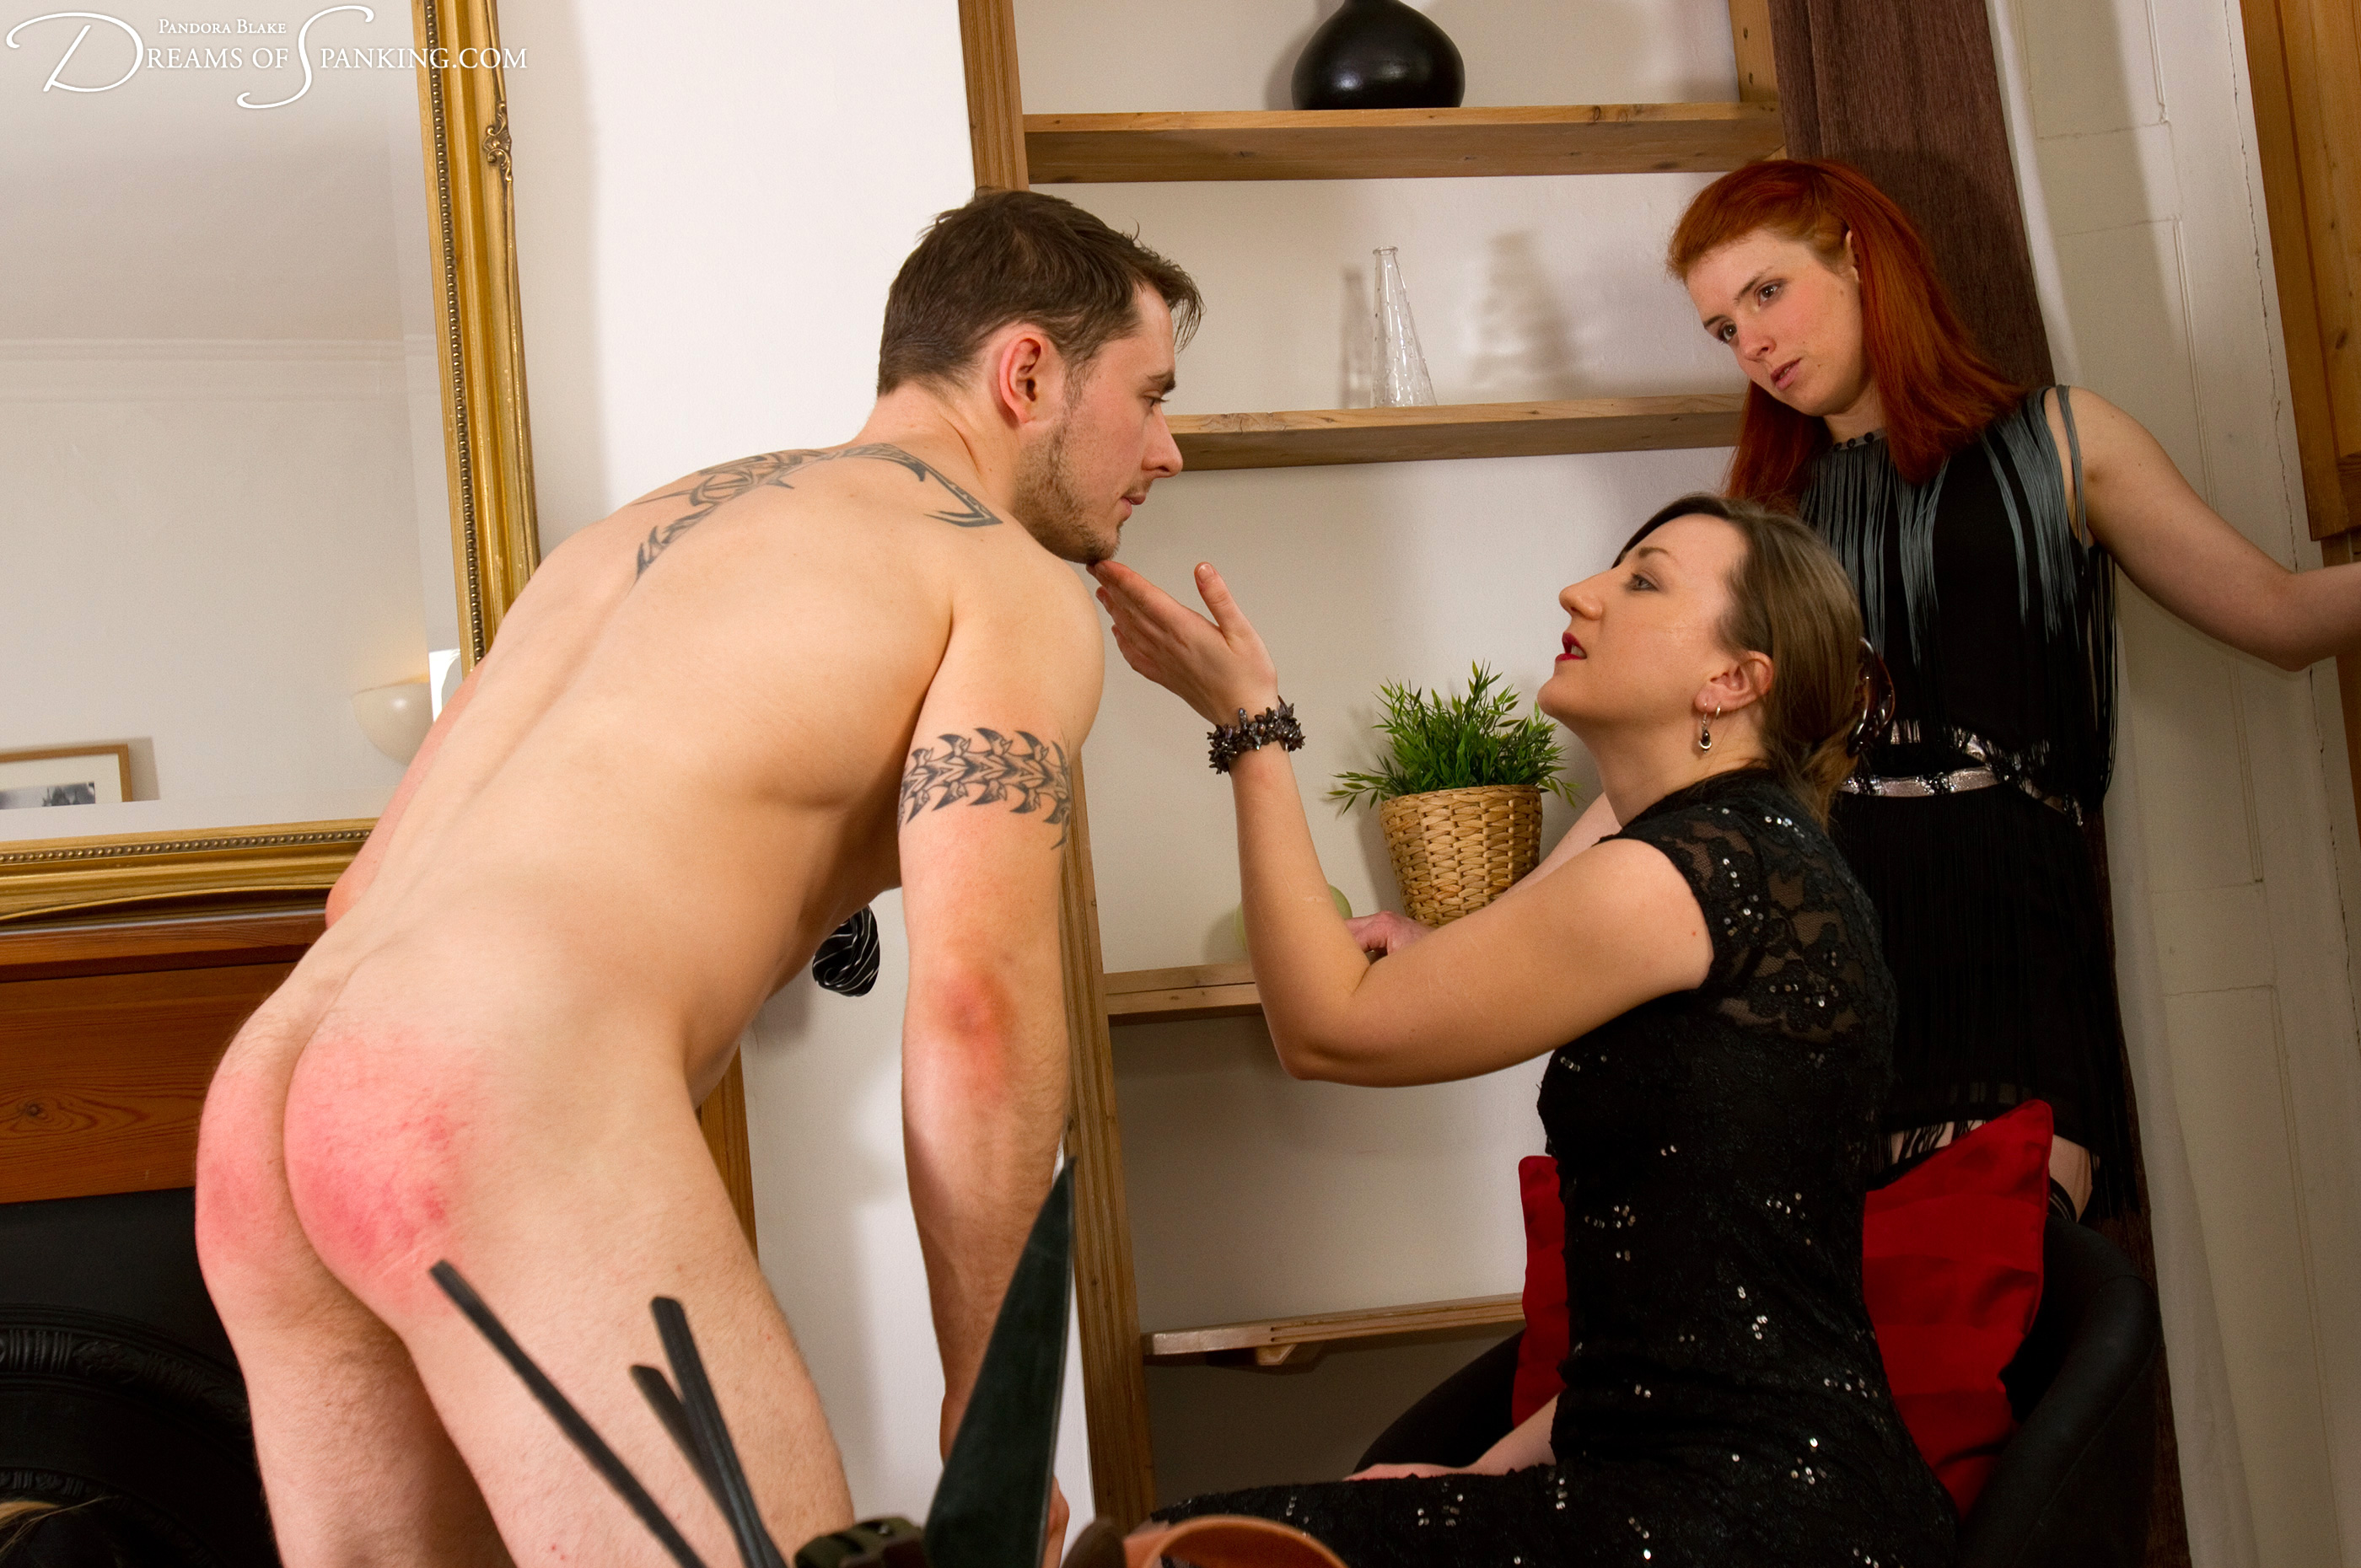 The Baroness has a new houseboy and plans to show him off...